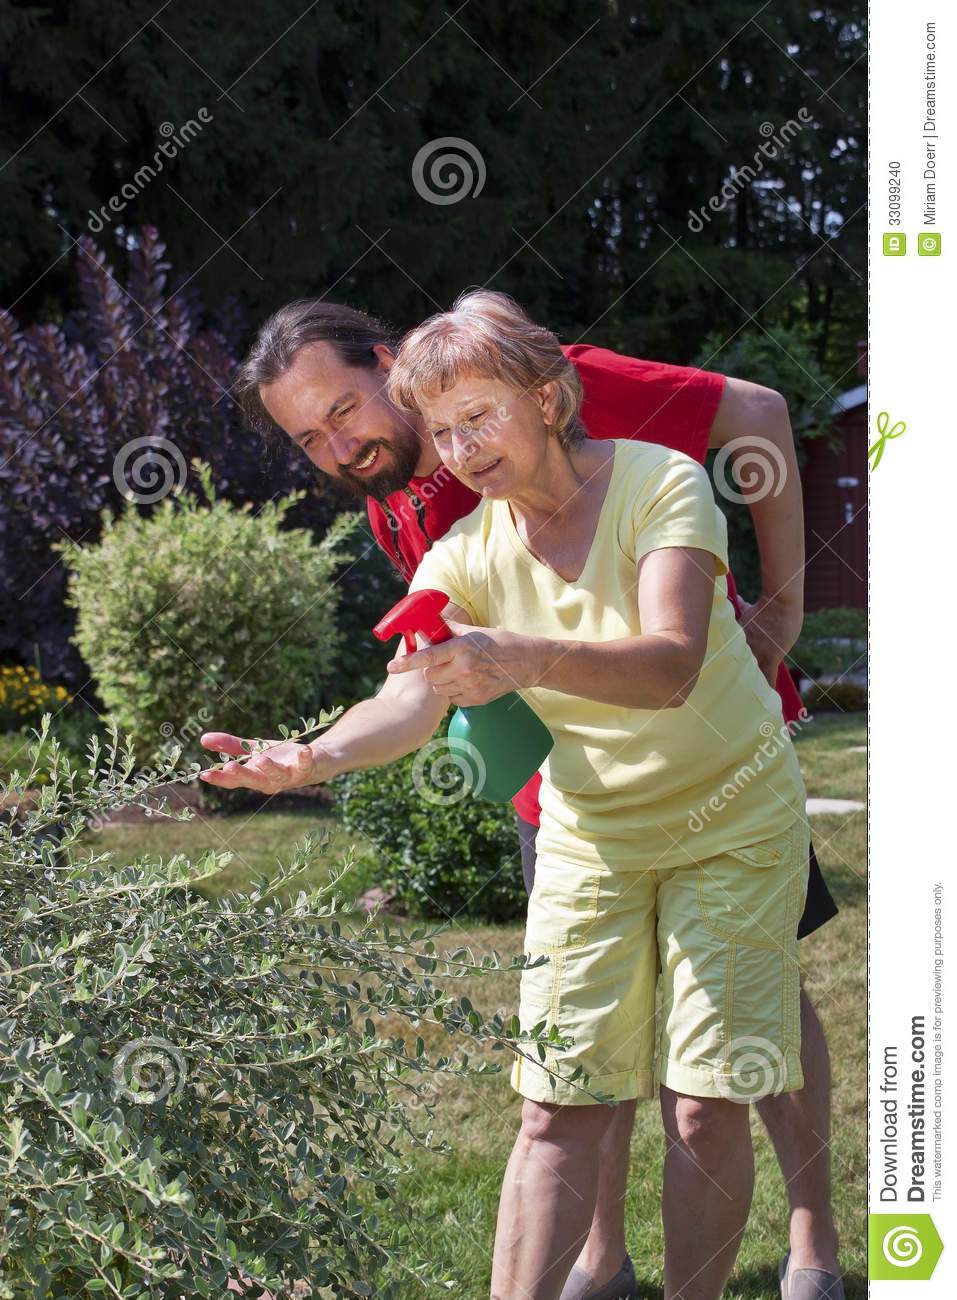 Man watches woman at gardening